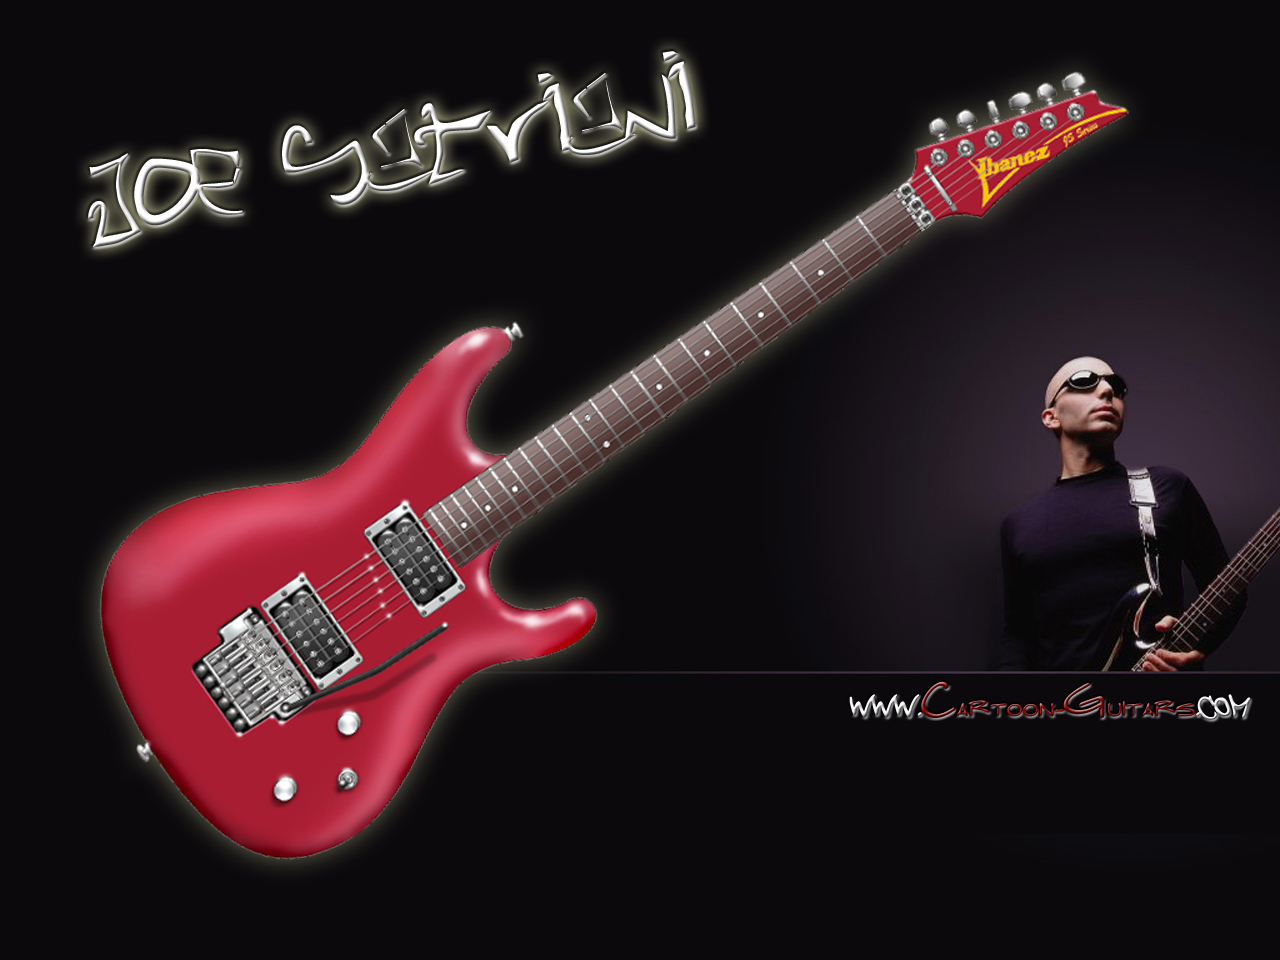 joe_satriani_js1200_wallpaper_20090315_1105795154.jpg